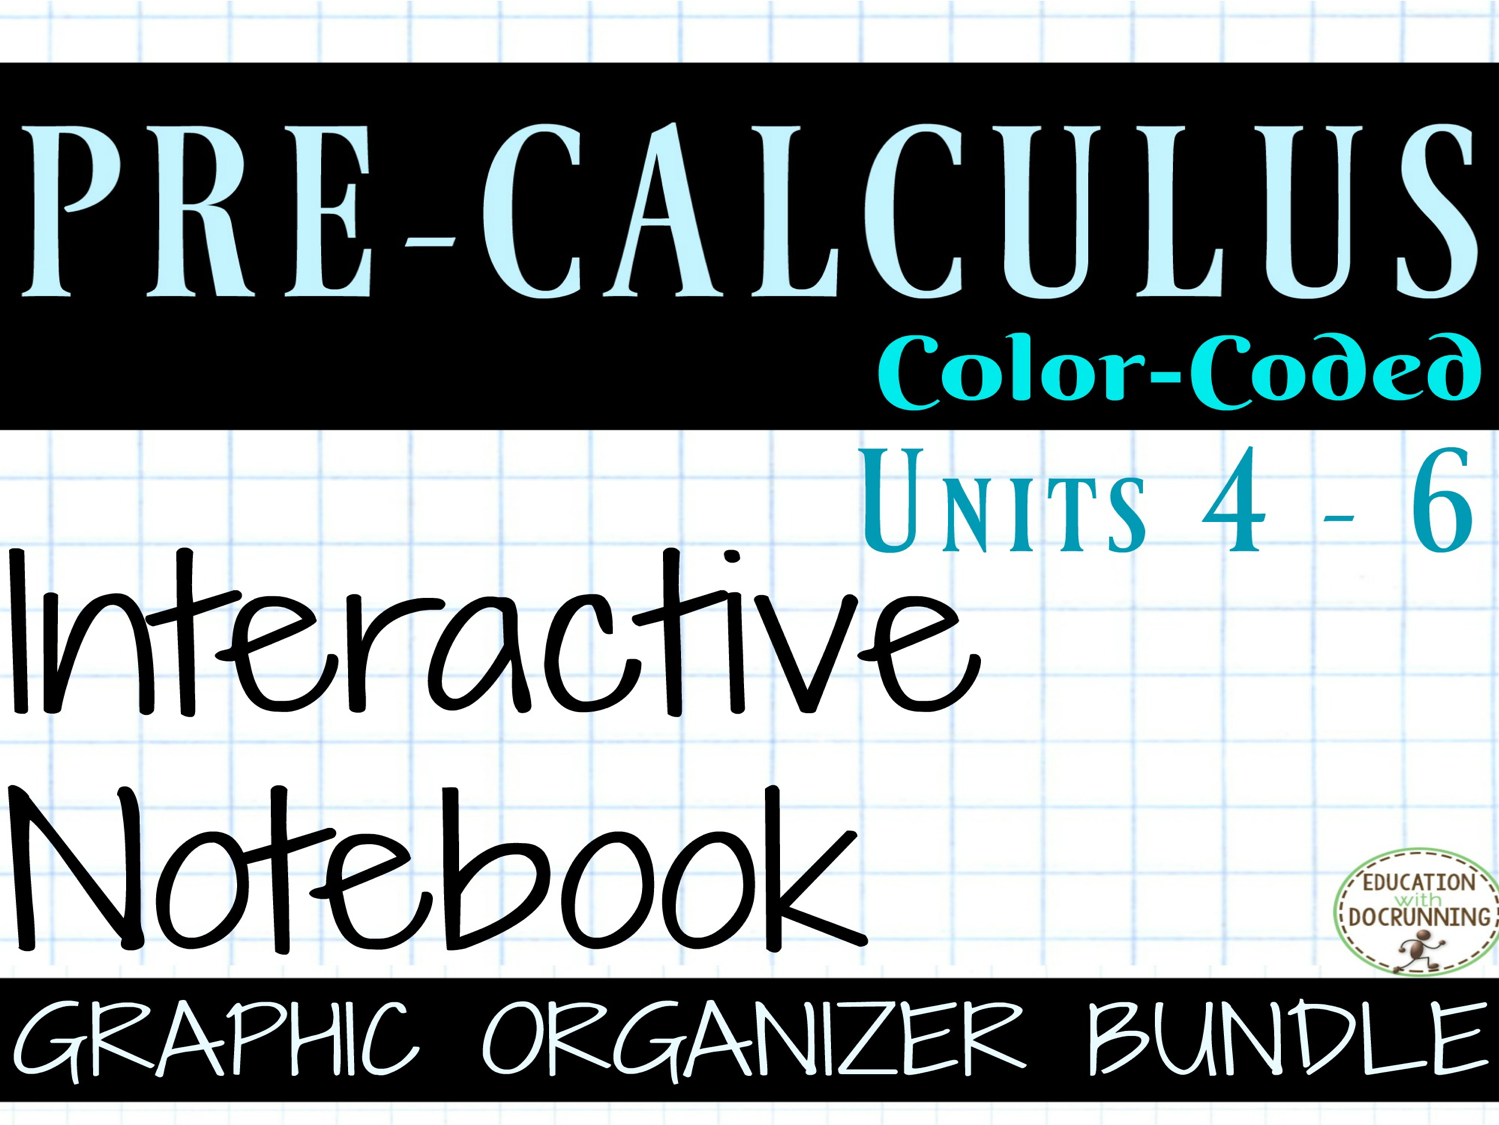 PreCalculus Units 4-6 Trigonometry Bundle